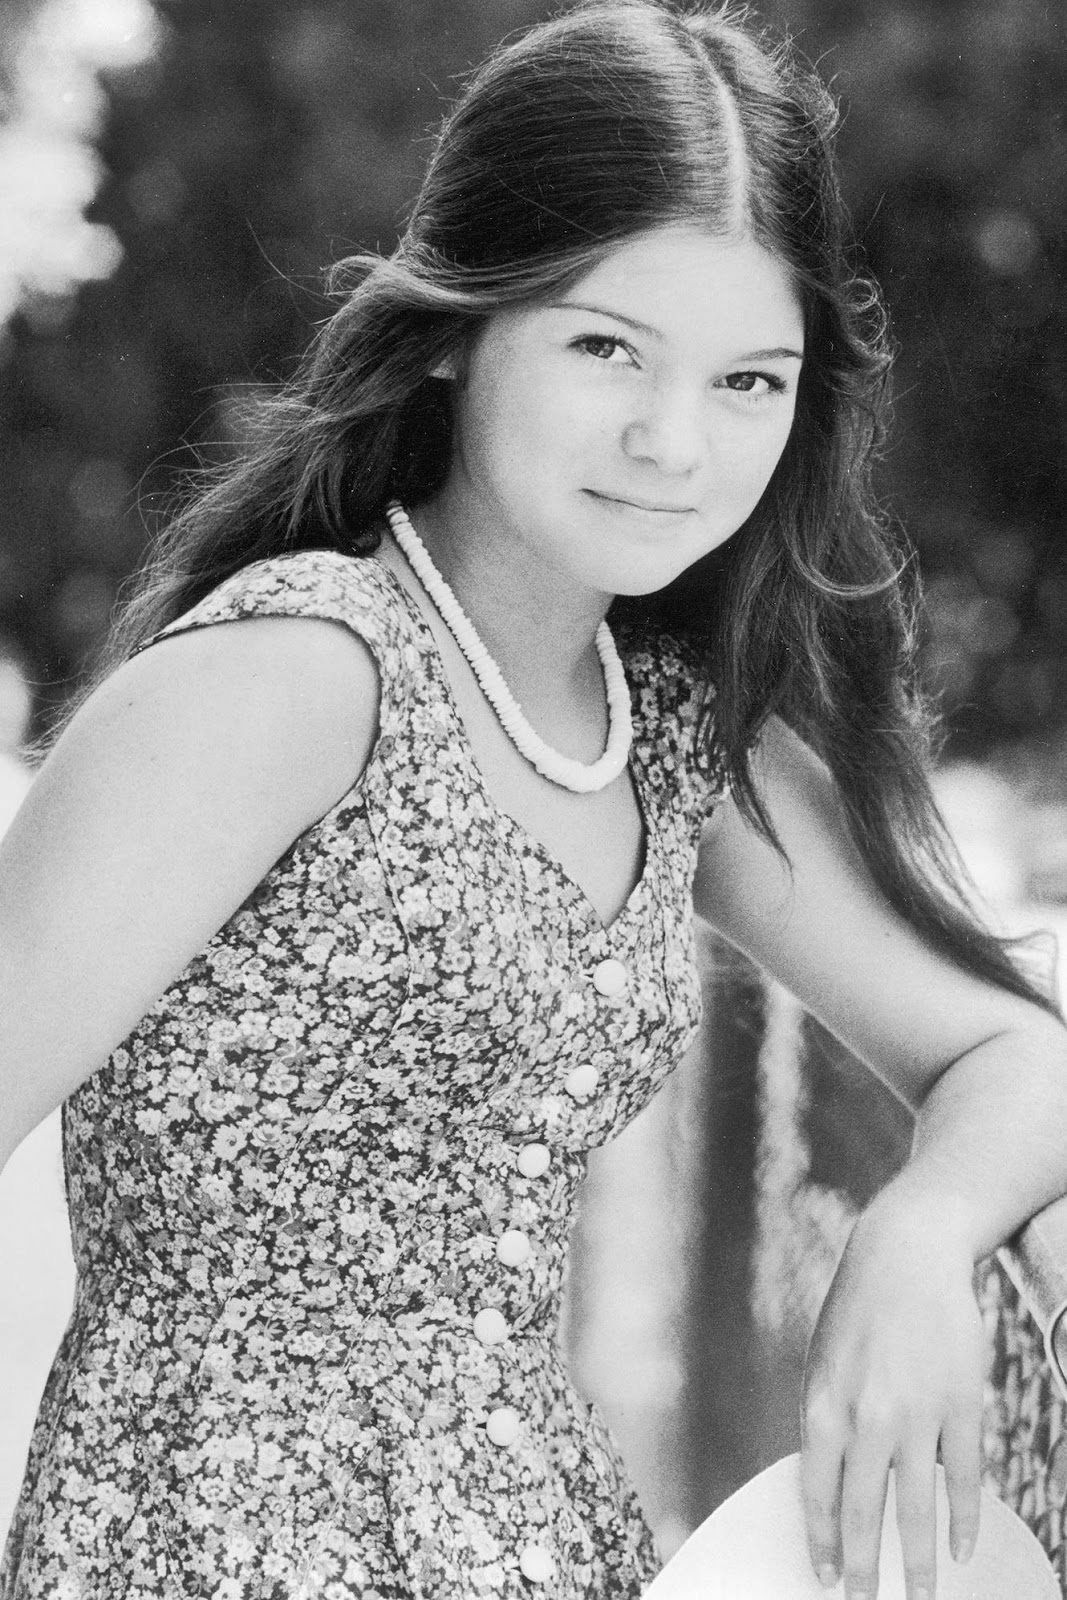 Valerie Bertinelli Valerie Bertinelli Valerie Bertinelli Young Actresses